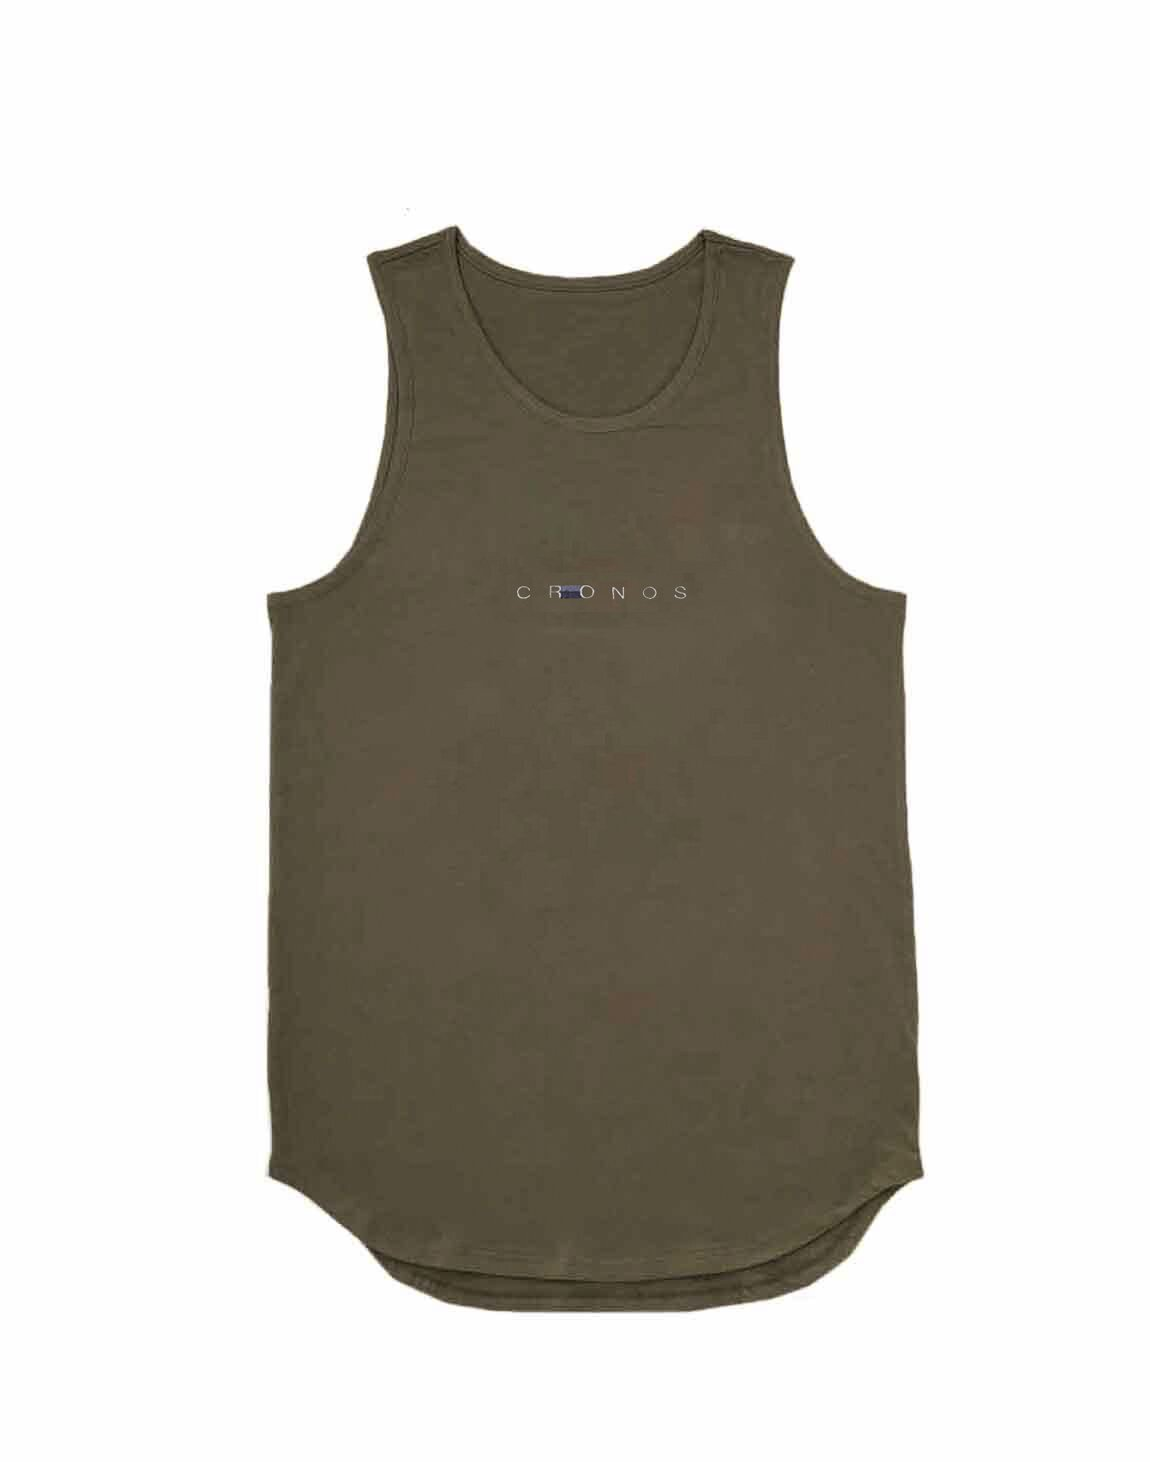 <img class='new_mark_img1' src='https://img.shop-pro.jp/img/new/icons55.gif' style='border:none;display:inline;margin:0px;padding:0px;width:auto;' />CRONOS STITCH TANK TOP【KAHKI】